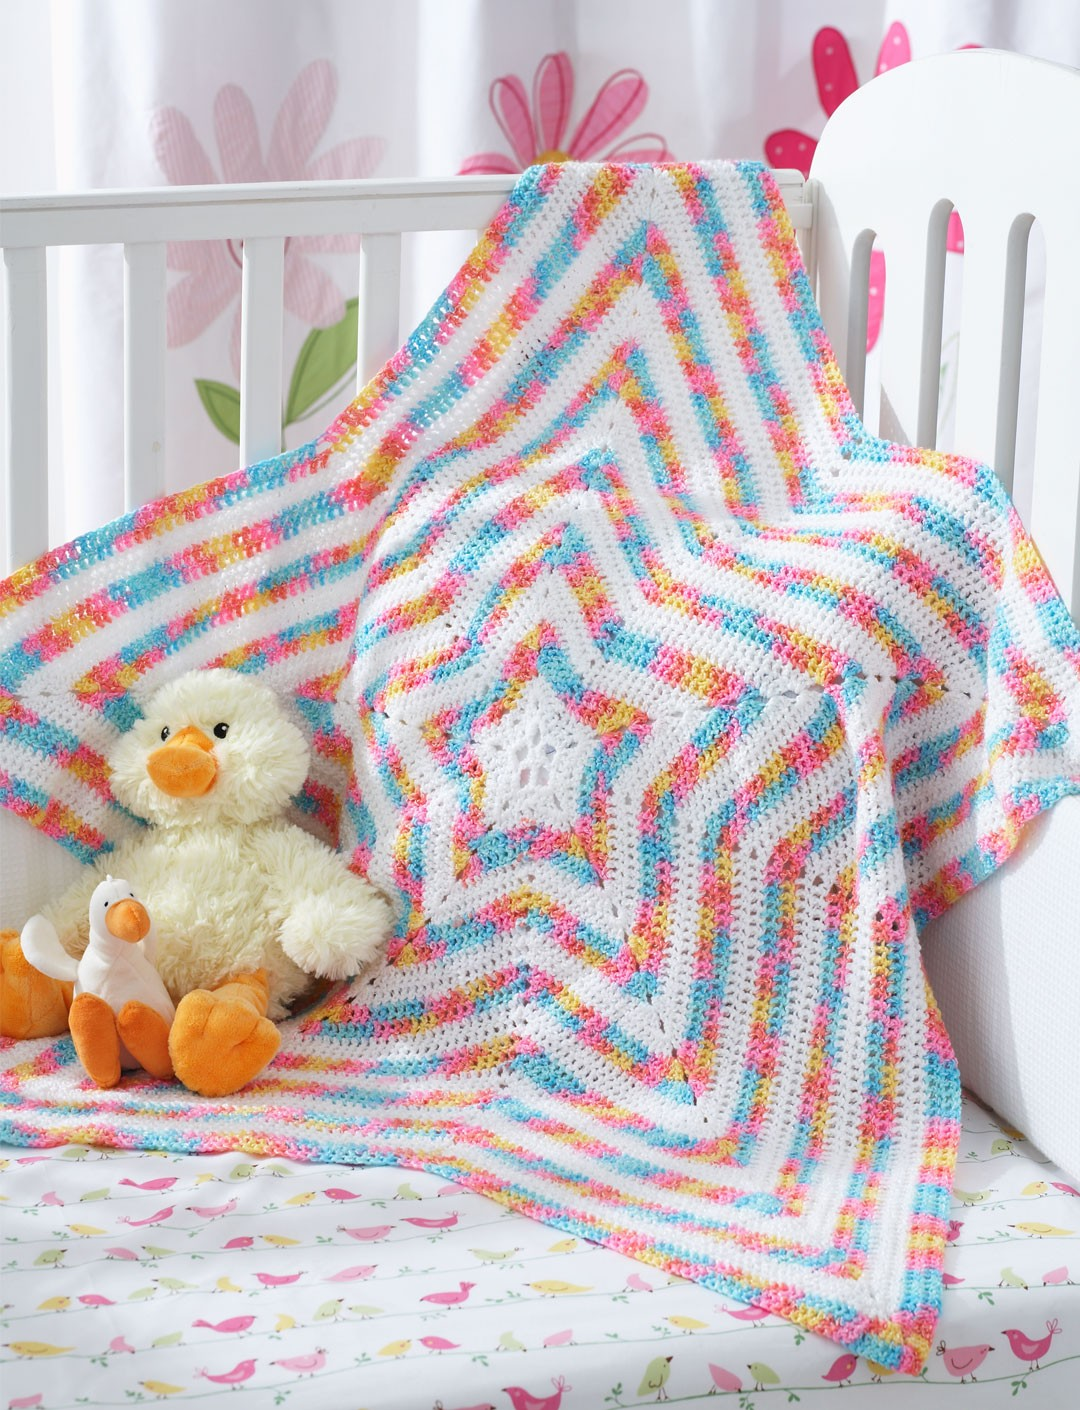 Knitting Patterns Using Bernat Baby Blanket Yarn